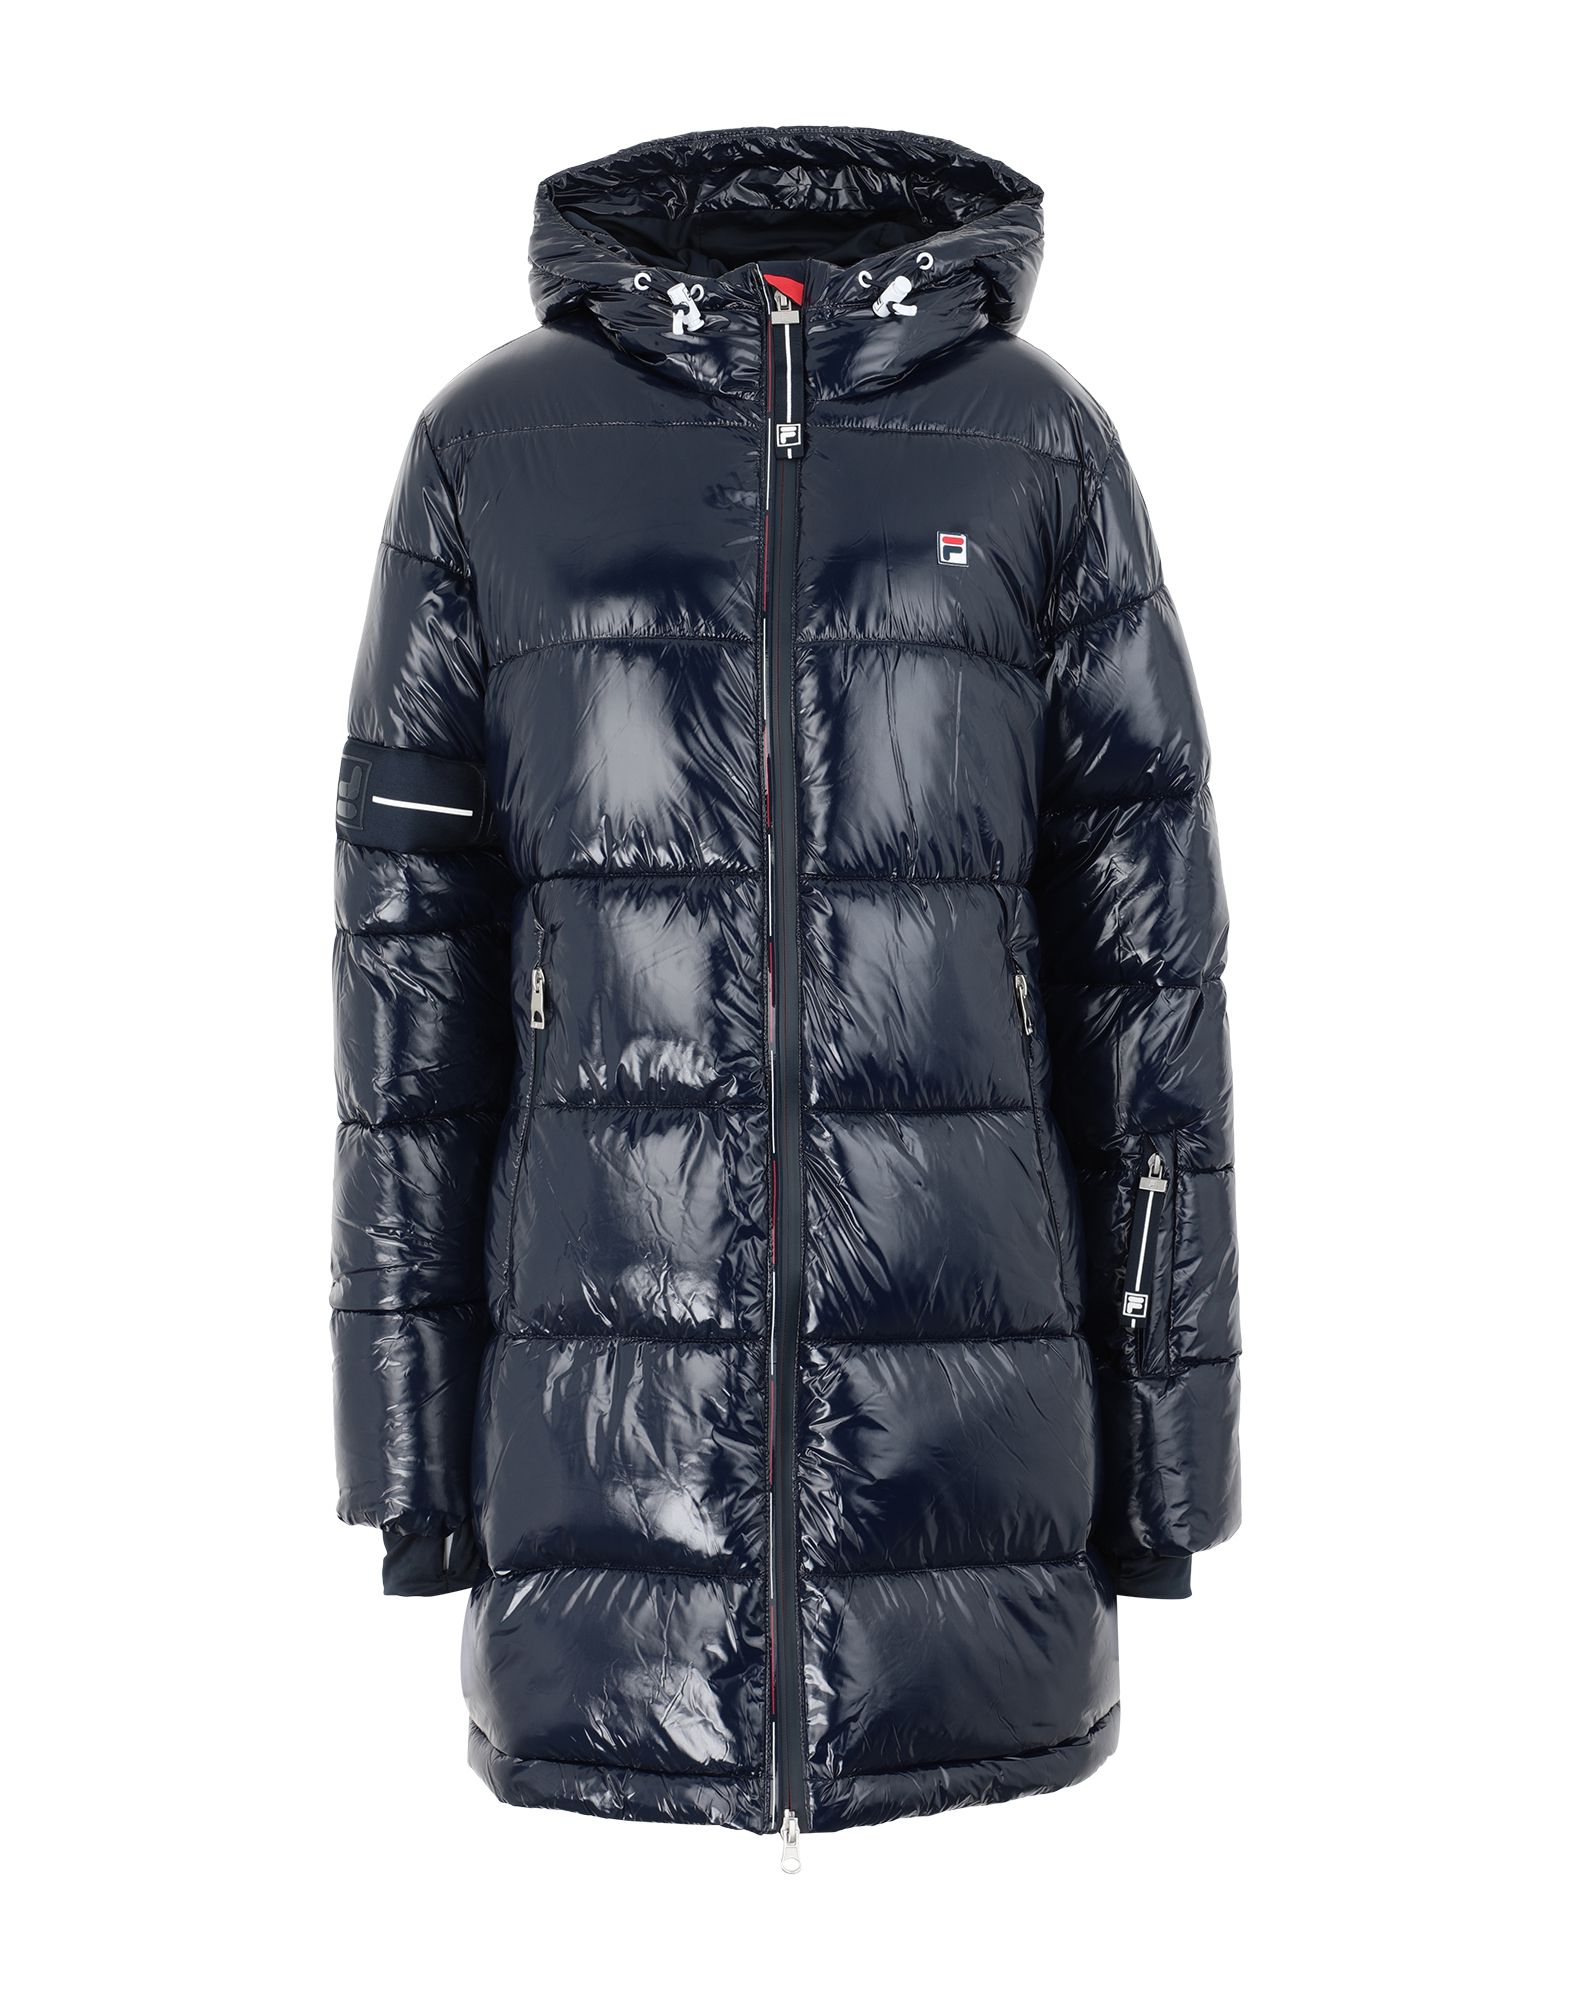 FILA HERITAGE Synthetic Down Jackets - Item 41939145